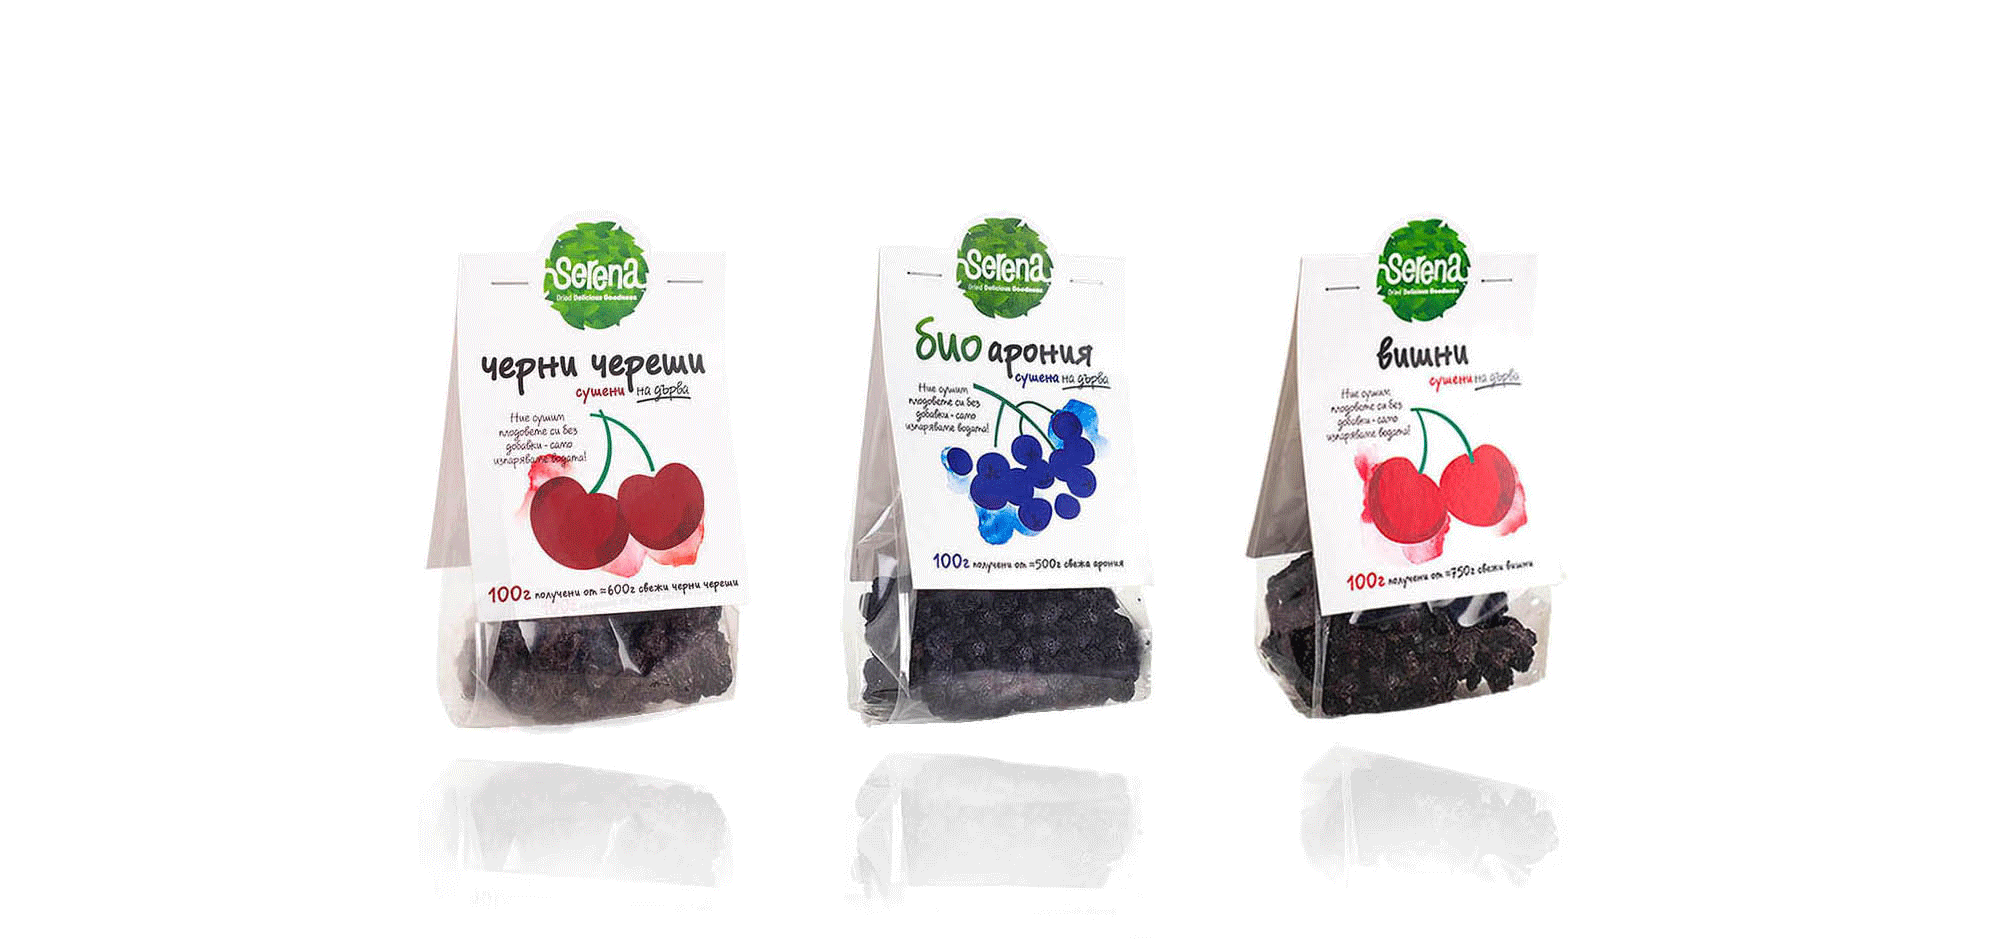 Dried black cherries, bio aroniq and sour cherries